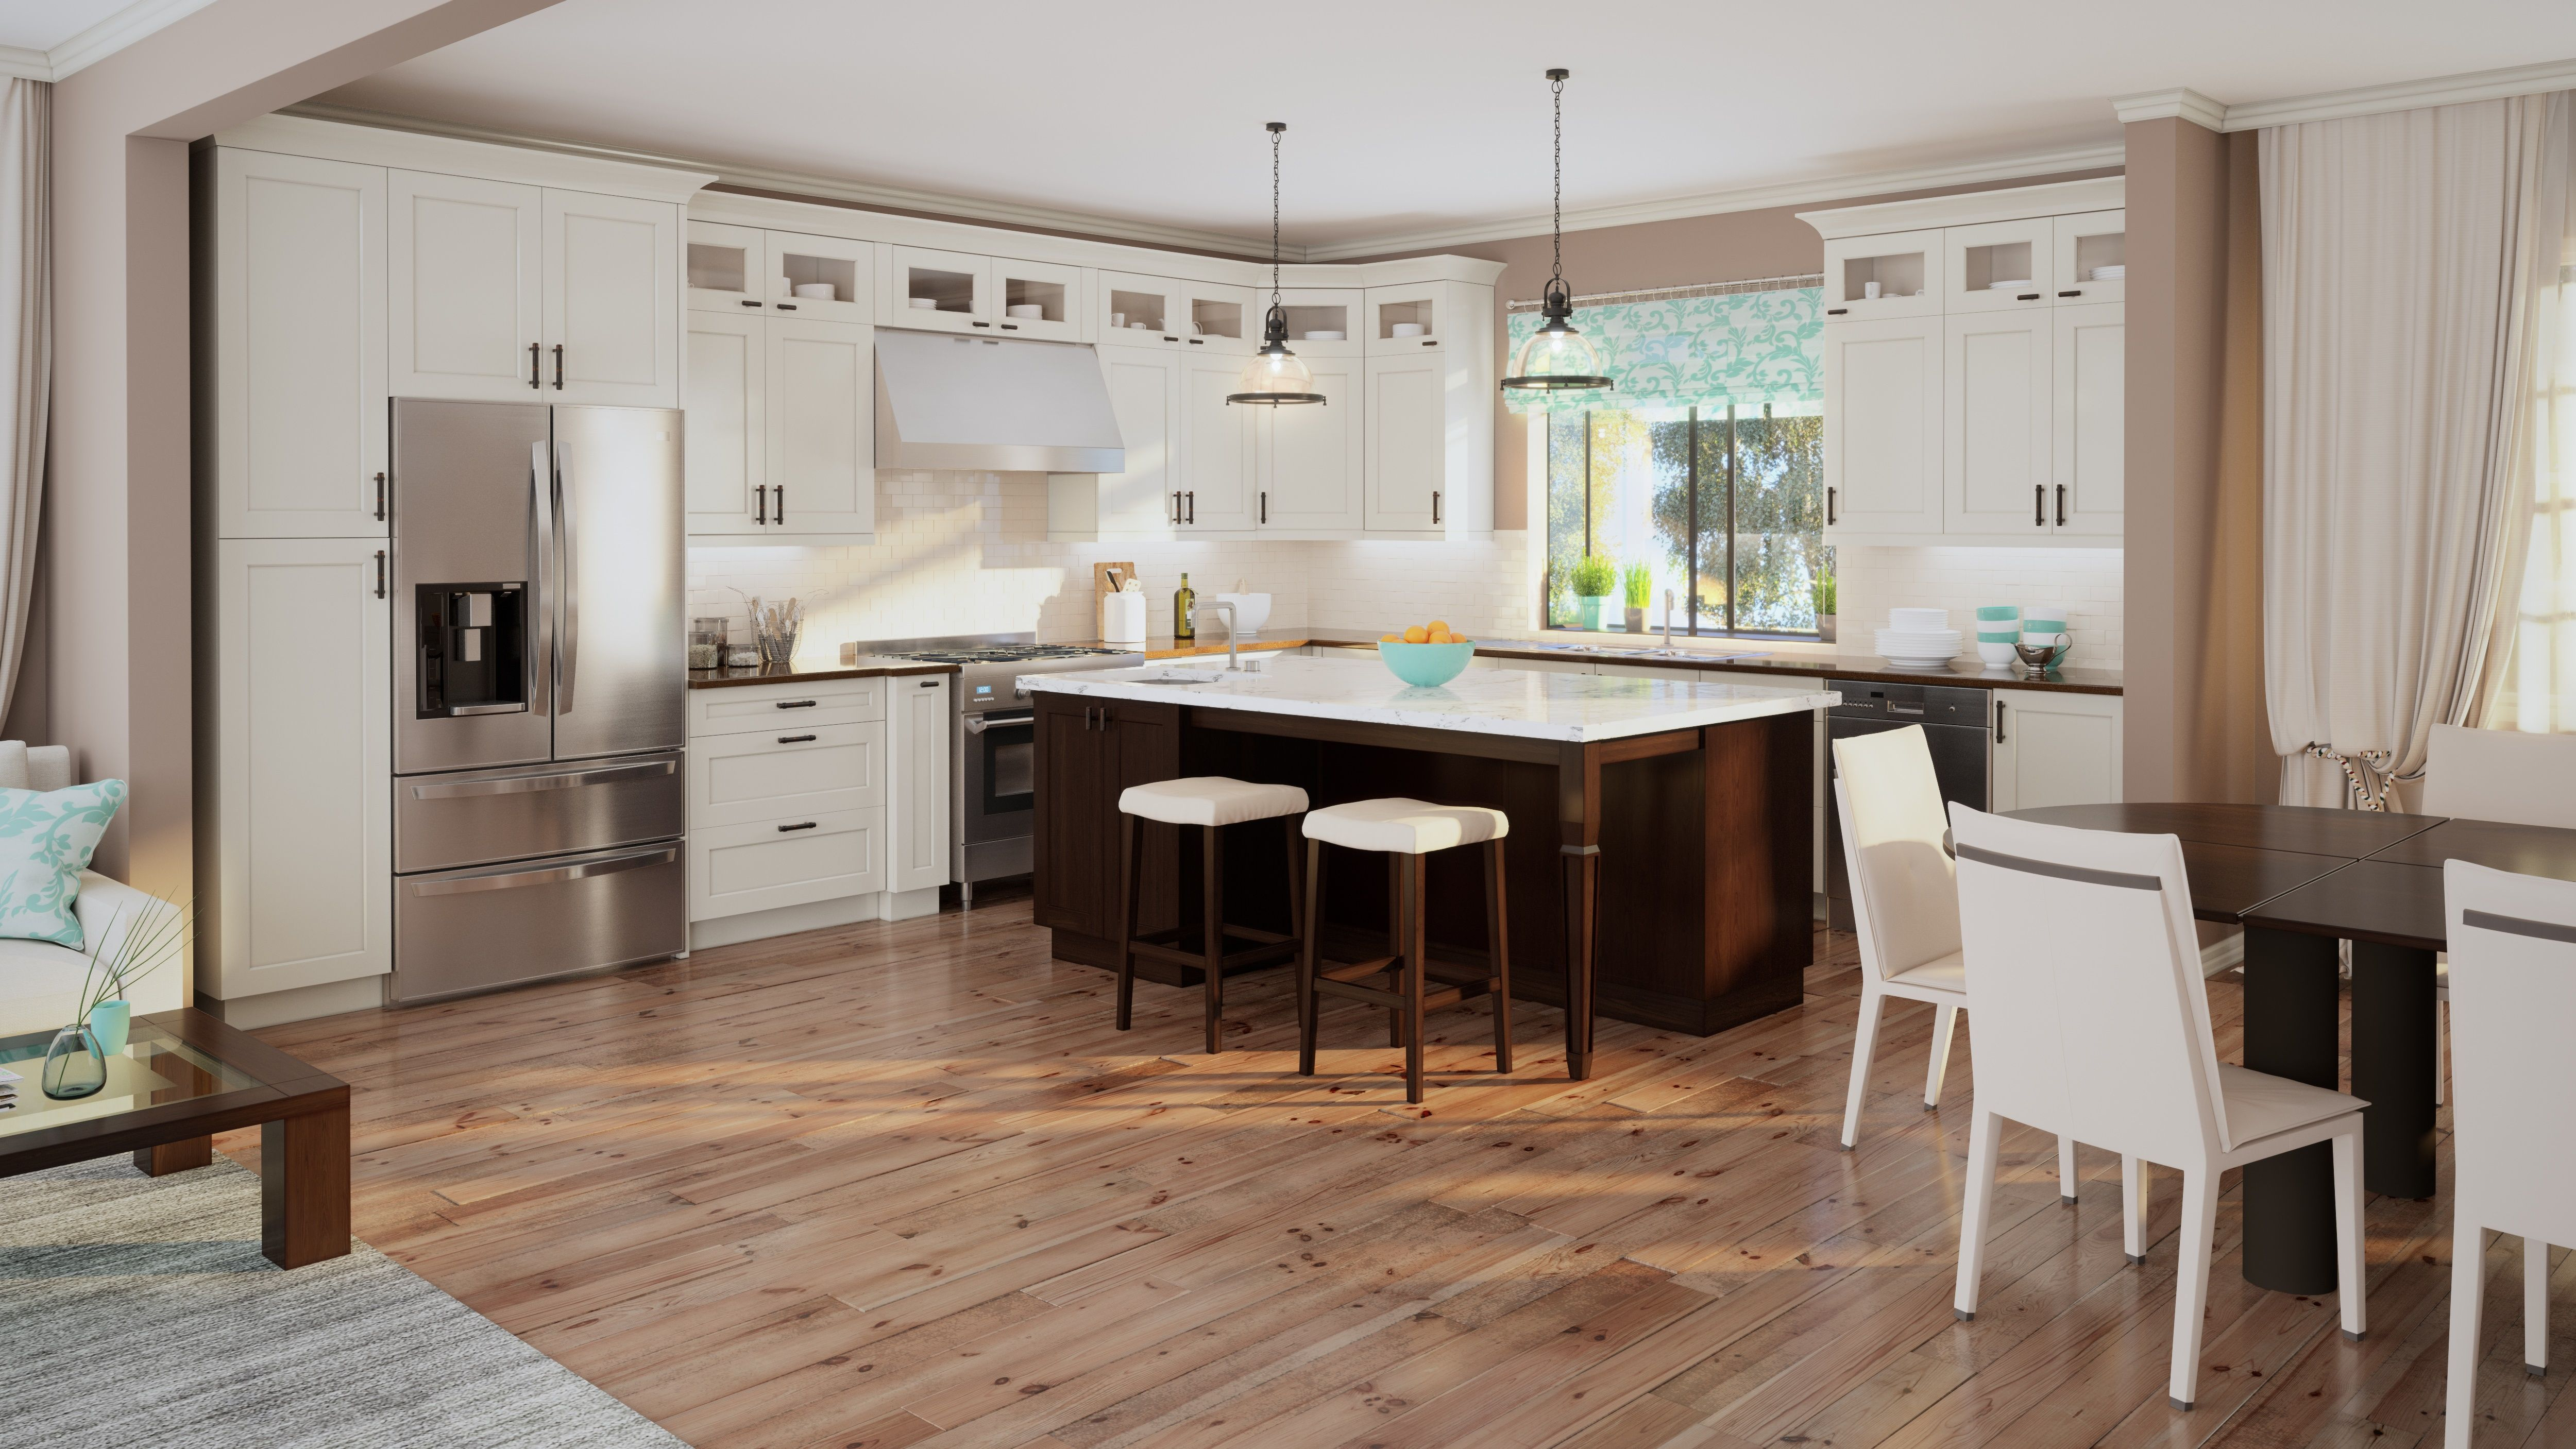 Successful Landing Page | Shaker style kitchen cabinets ...